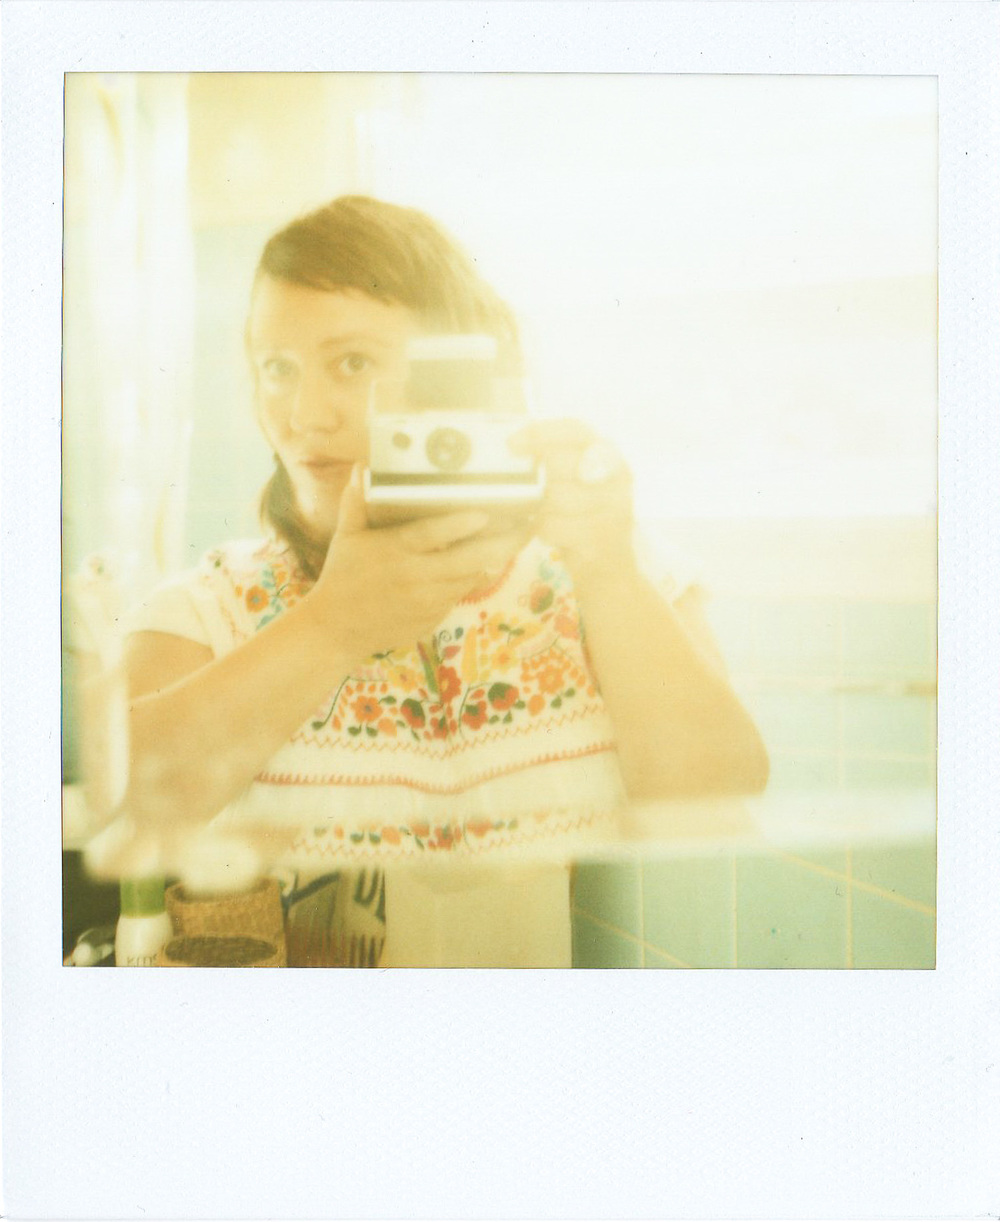 Andrea-Jenkins-self-portrait-Atlanta-Amsterdam-Polaroid-Impossible-Project-1.jpg